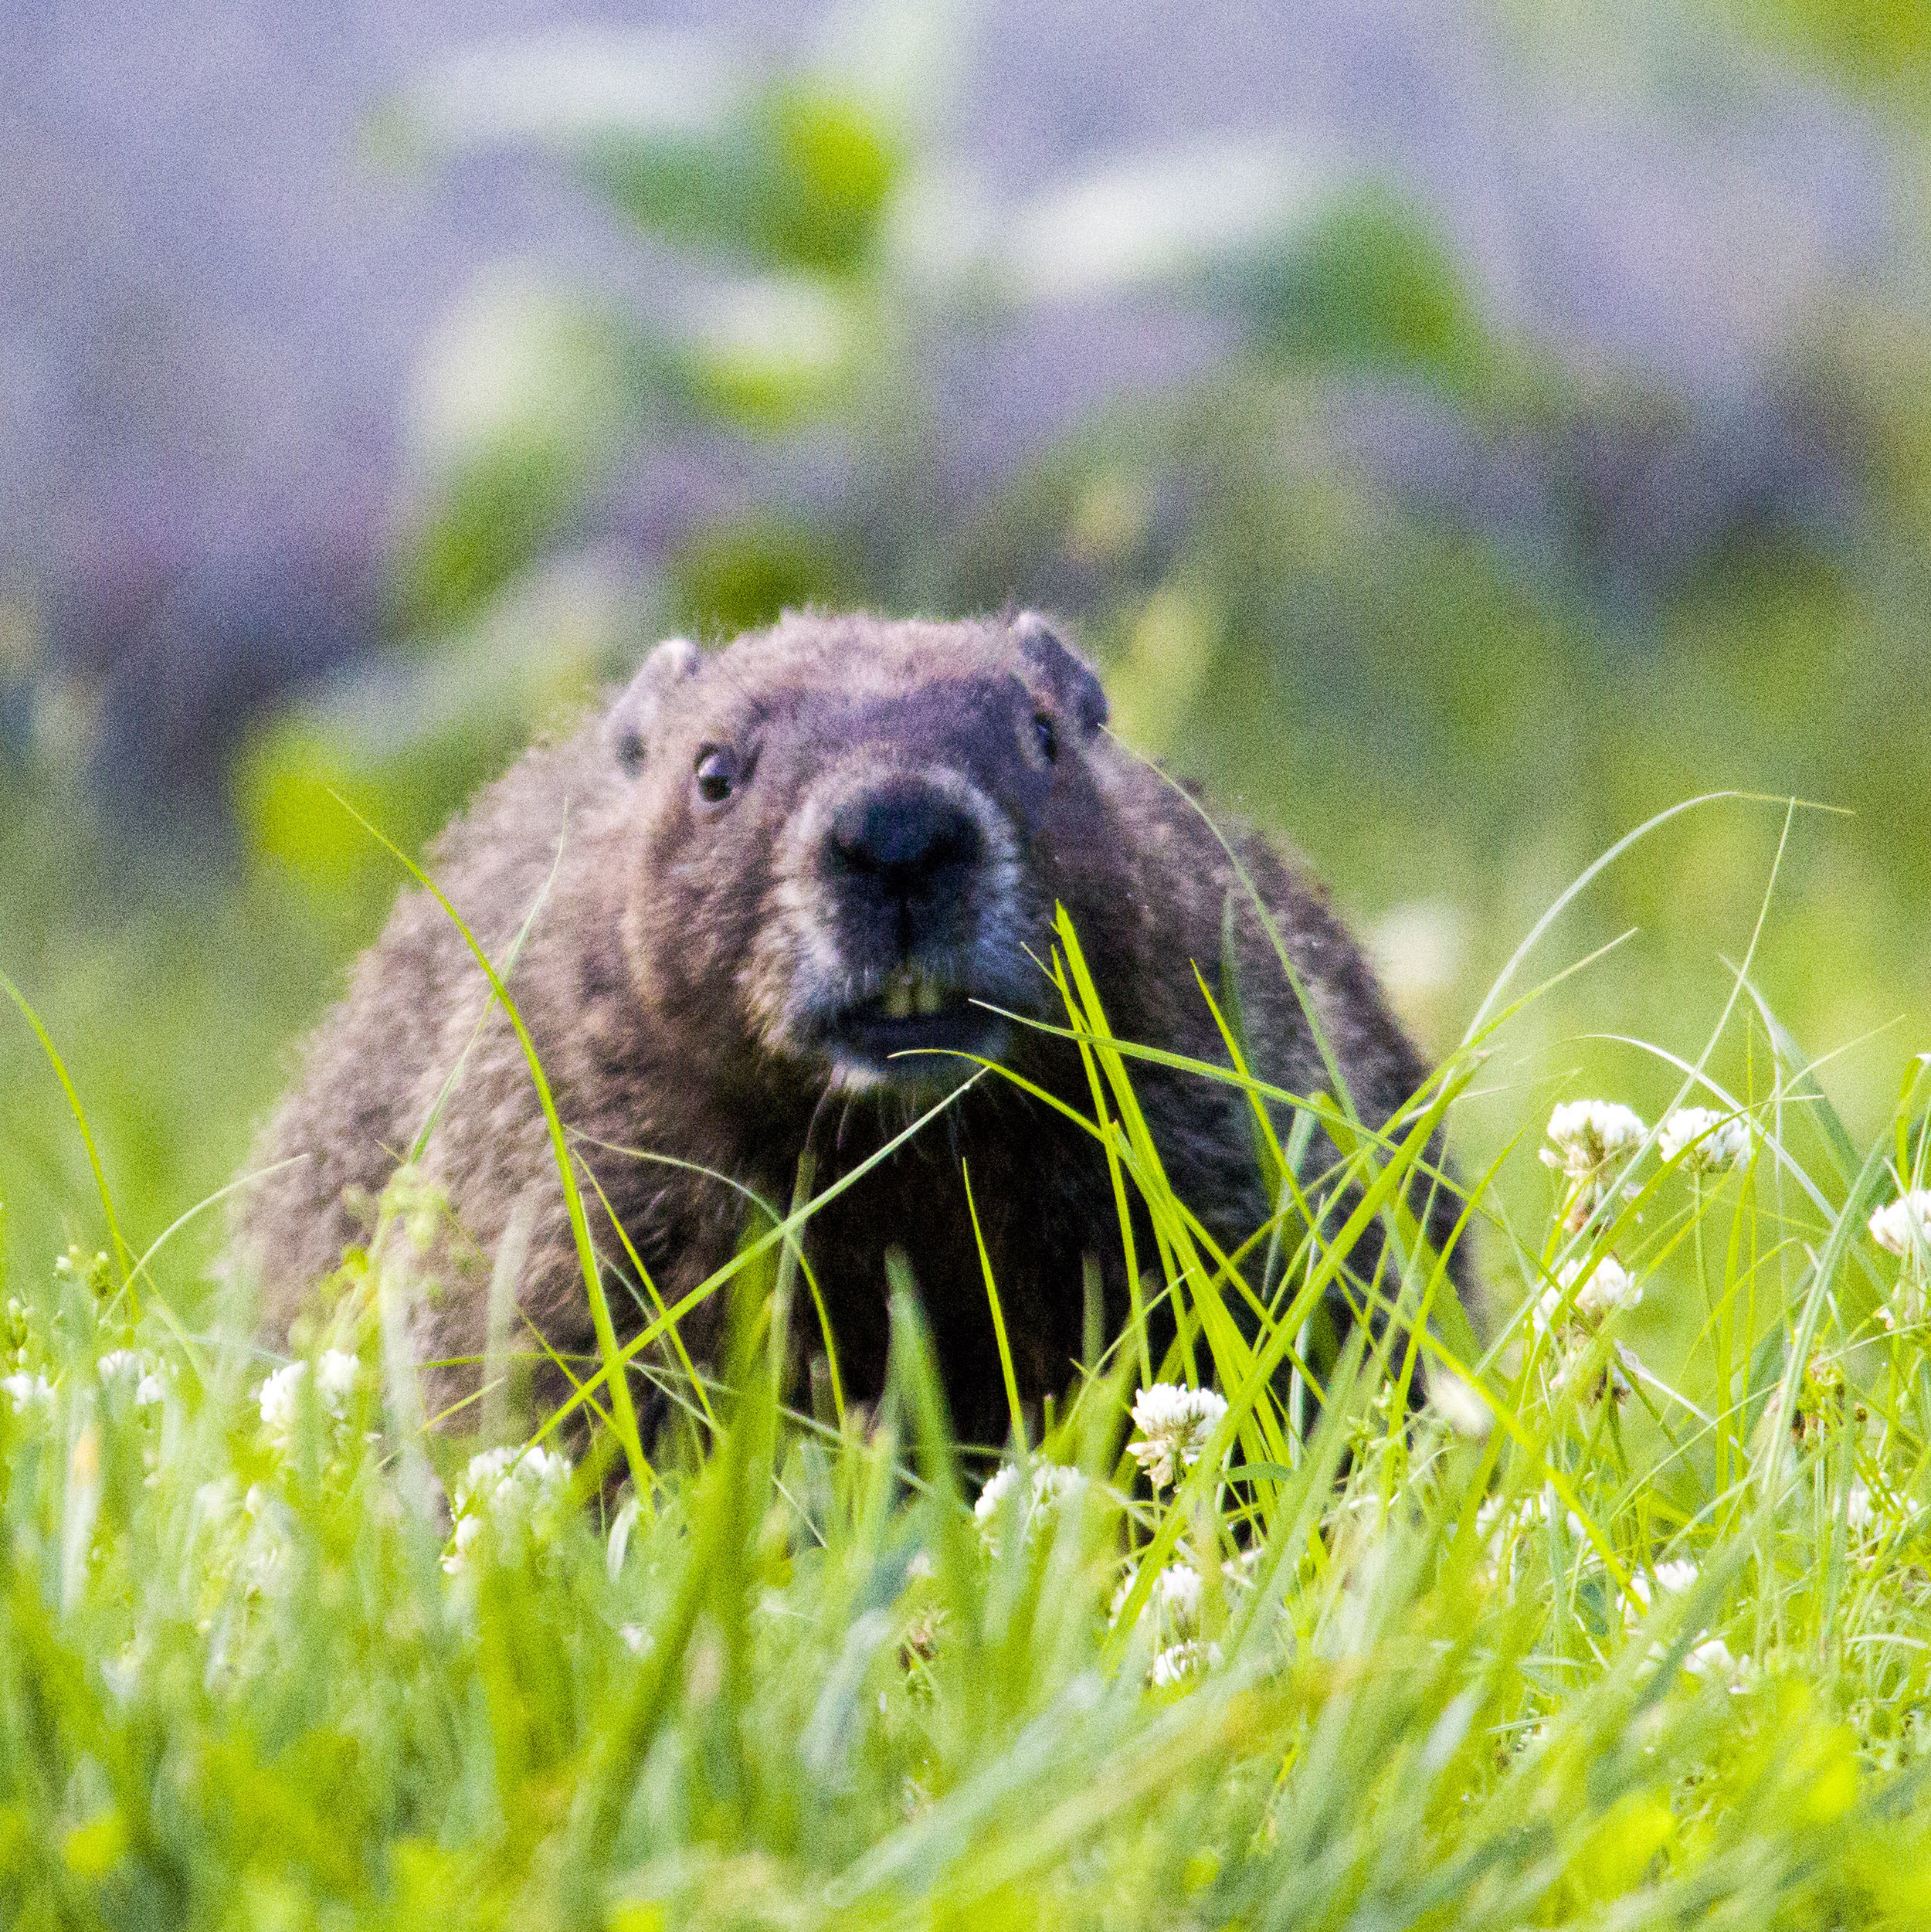 One of the groundhogs that used to live in my backyard.